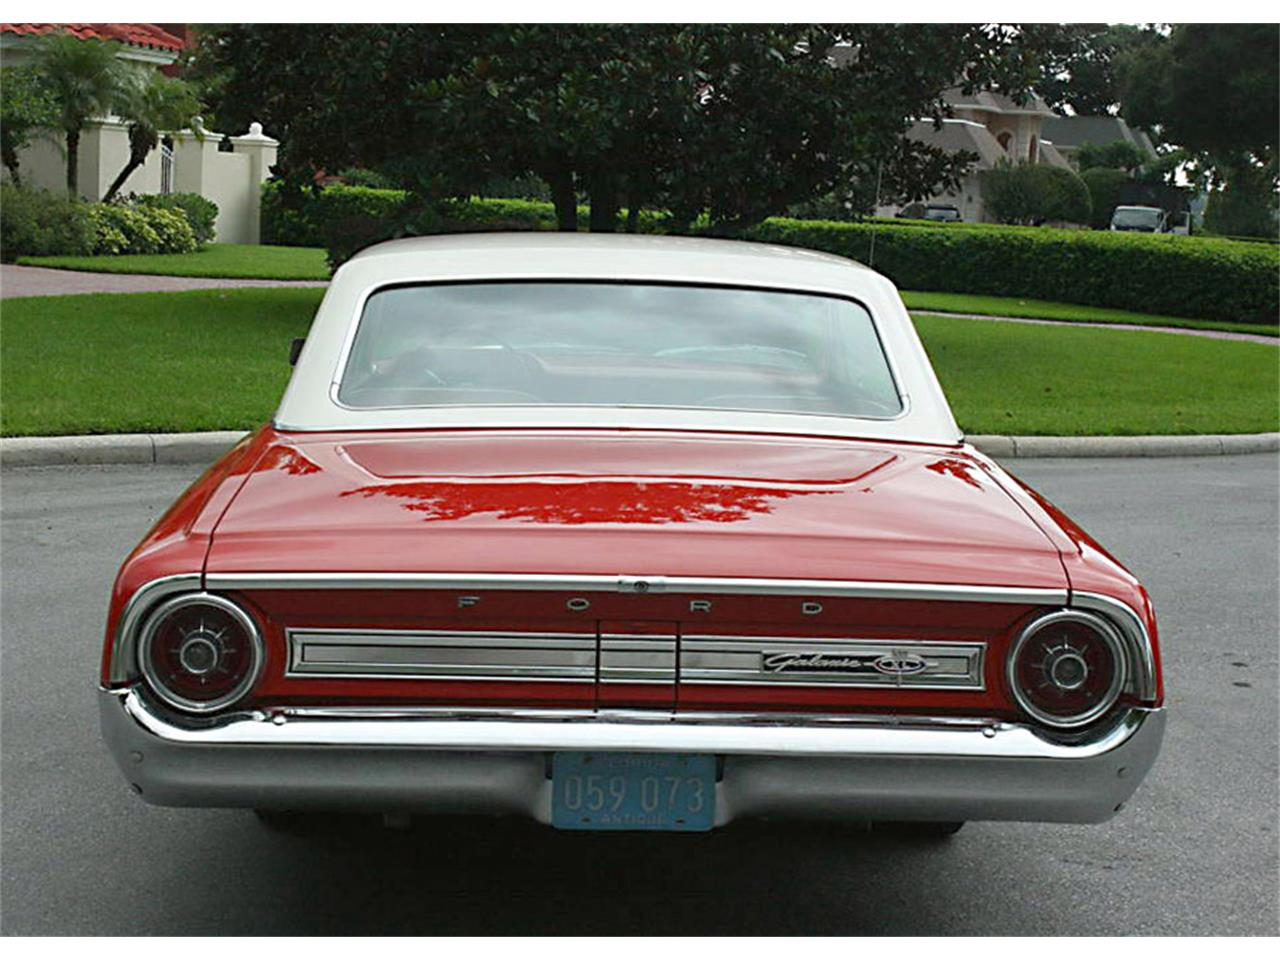 Large Picture of '64 Ford Galaxie 500 - $27,500.00 - NOH3